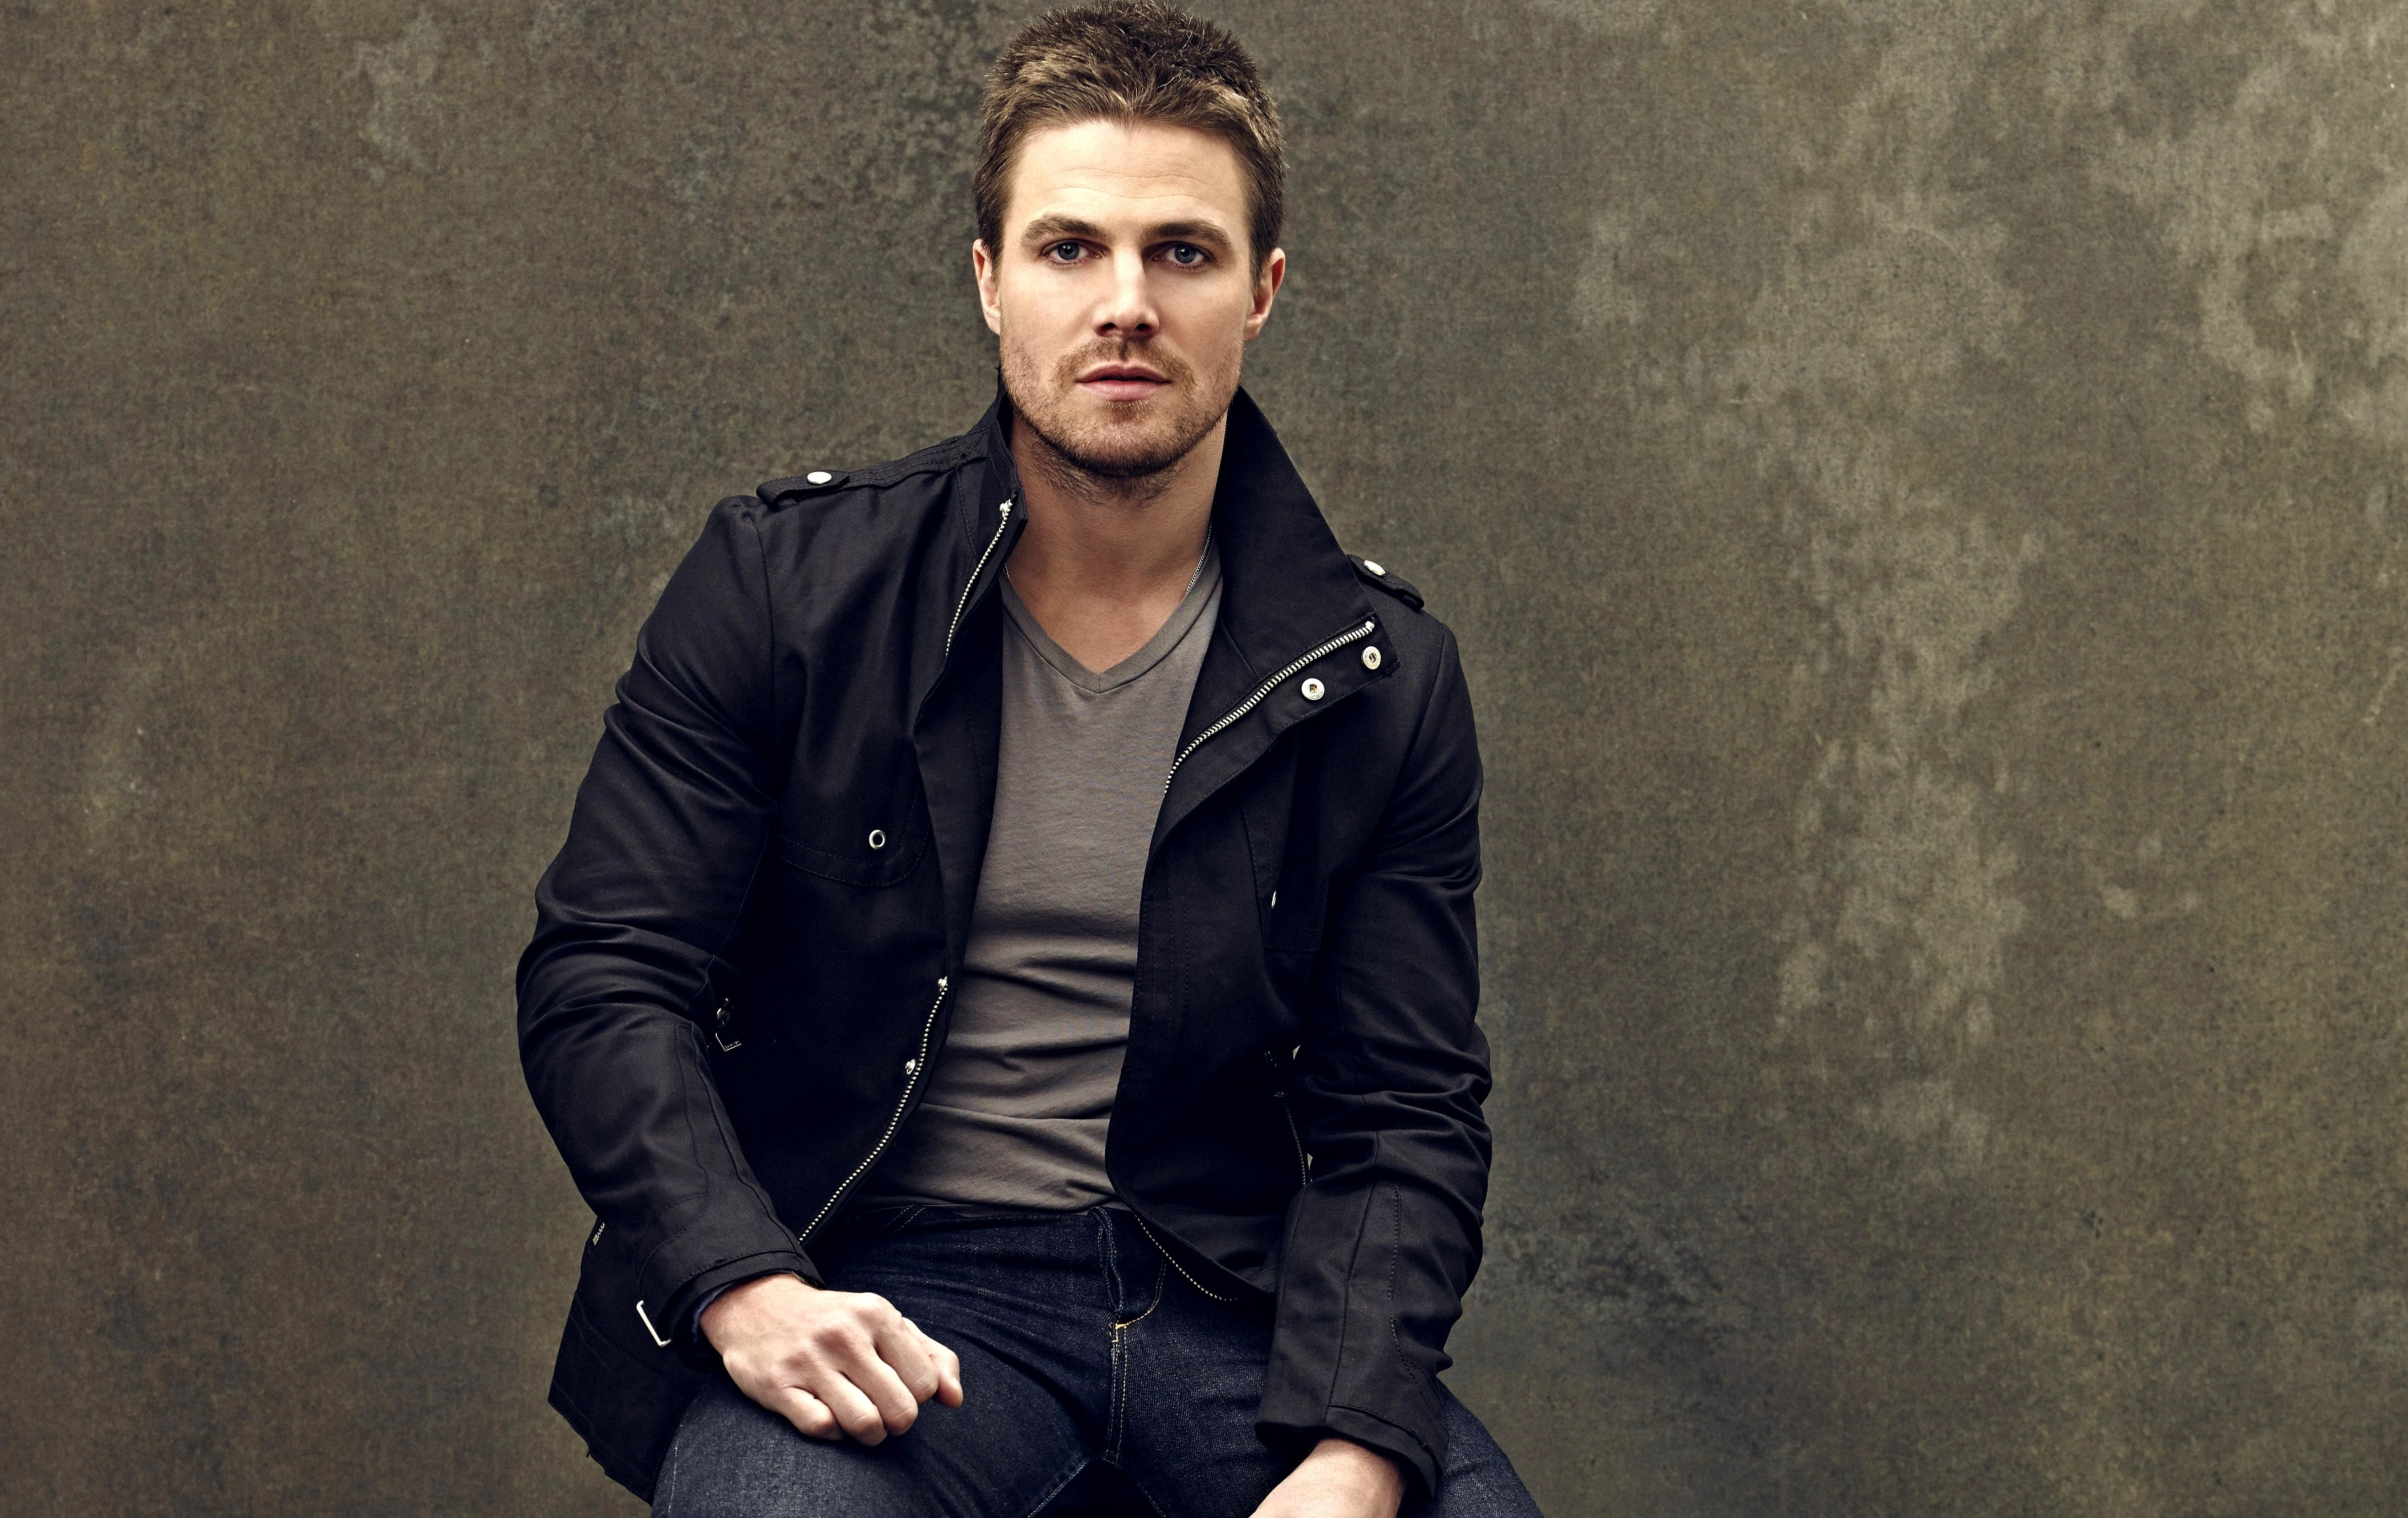 Supernatural Wallpaper Dean Quotes Wallpaper Stephen Amell Most Popular Celebs In 2015